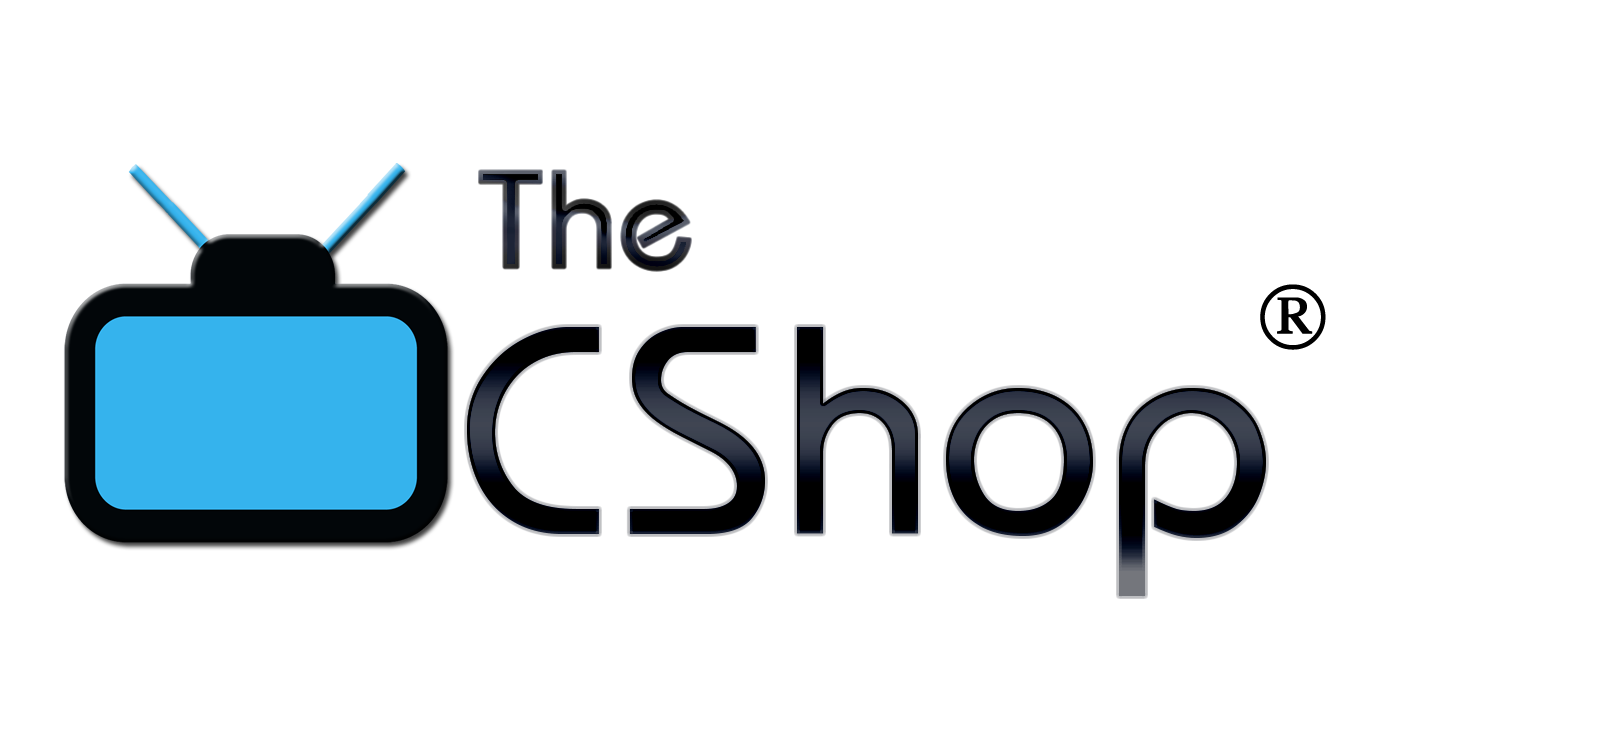 The CShop: Affordable Celebrity Endorsement For All Sized Businesses